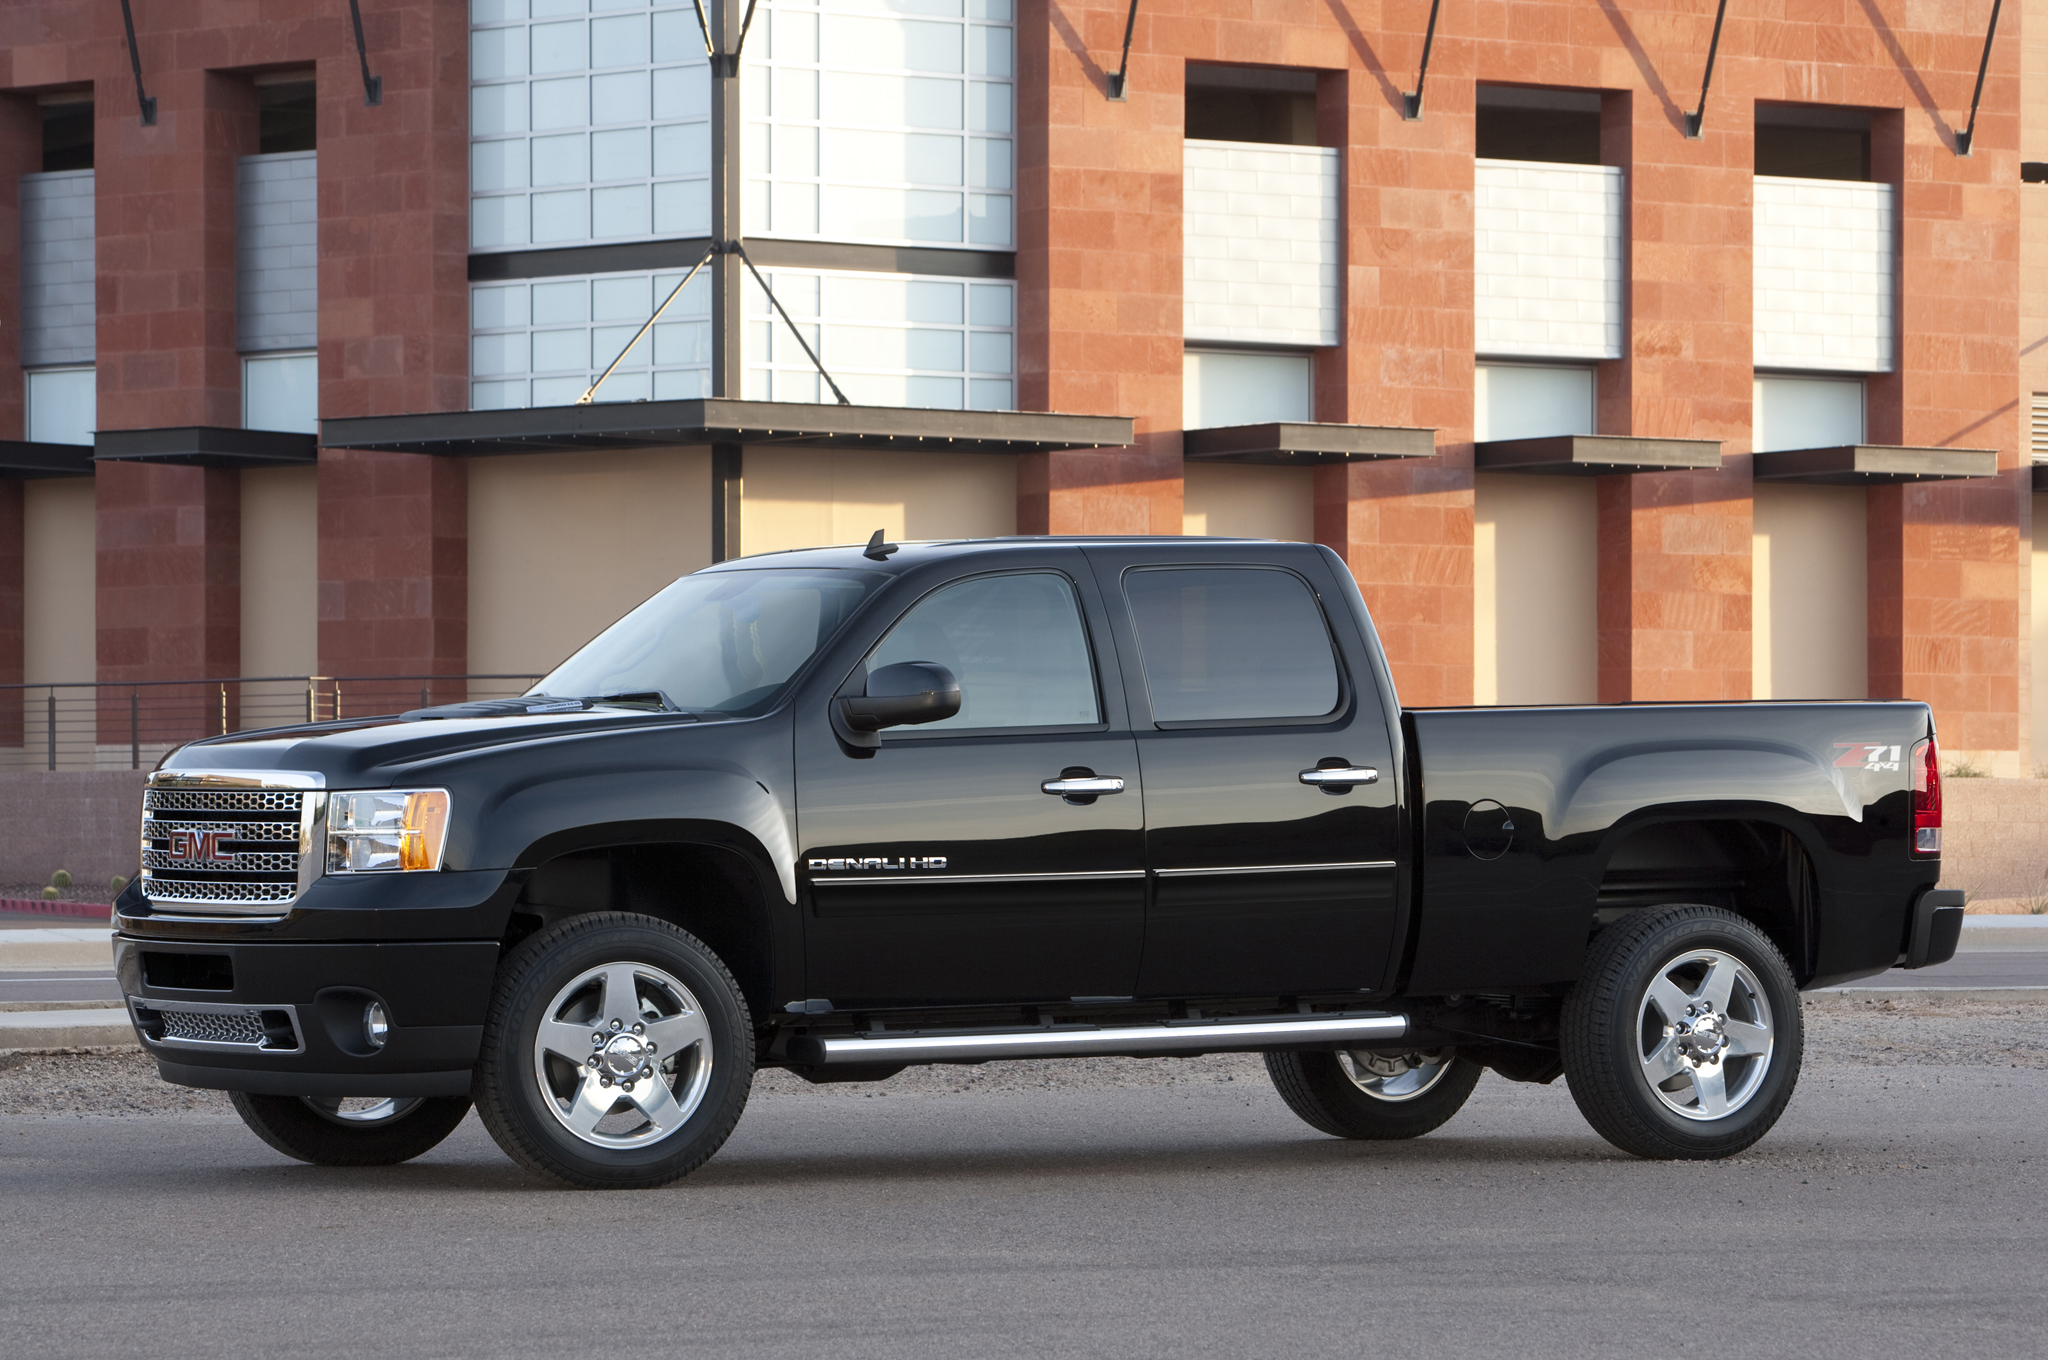 gmc carbonedition sierra pages editions en sporty news detail carbon substance denali media sep add content looks us